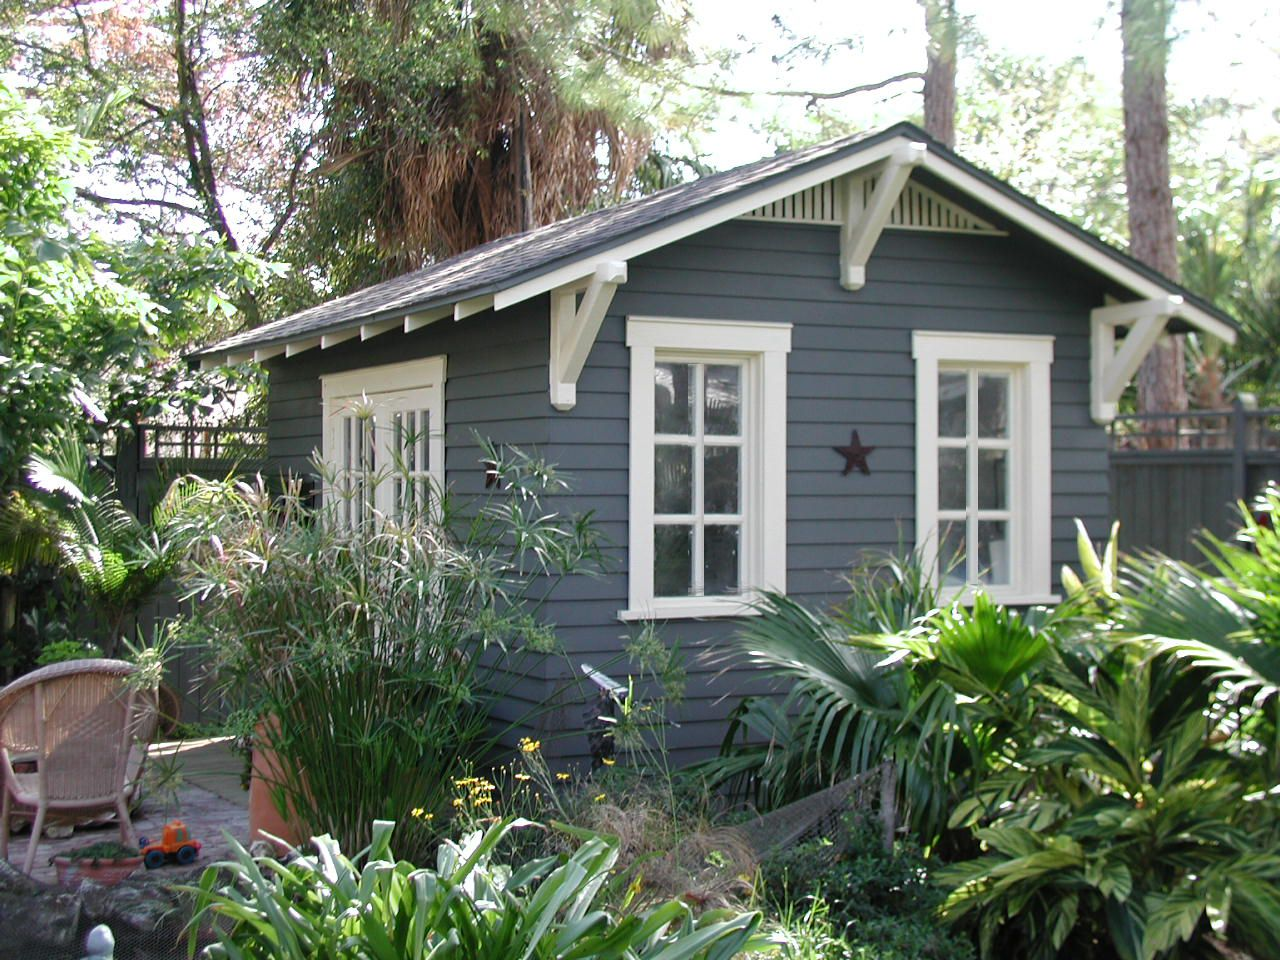 historic sheds and a tiny house interview on rowdykittens com